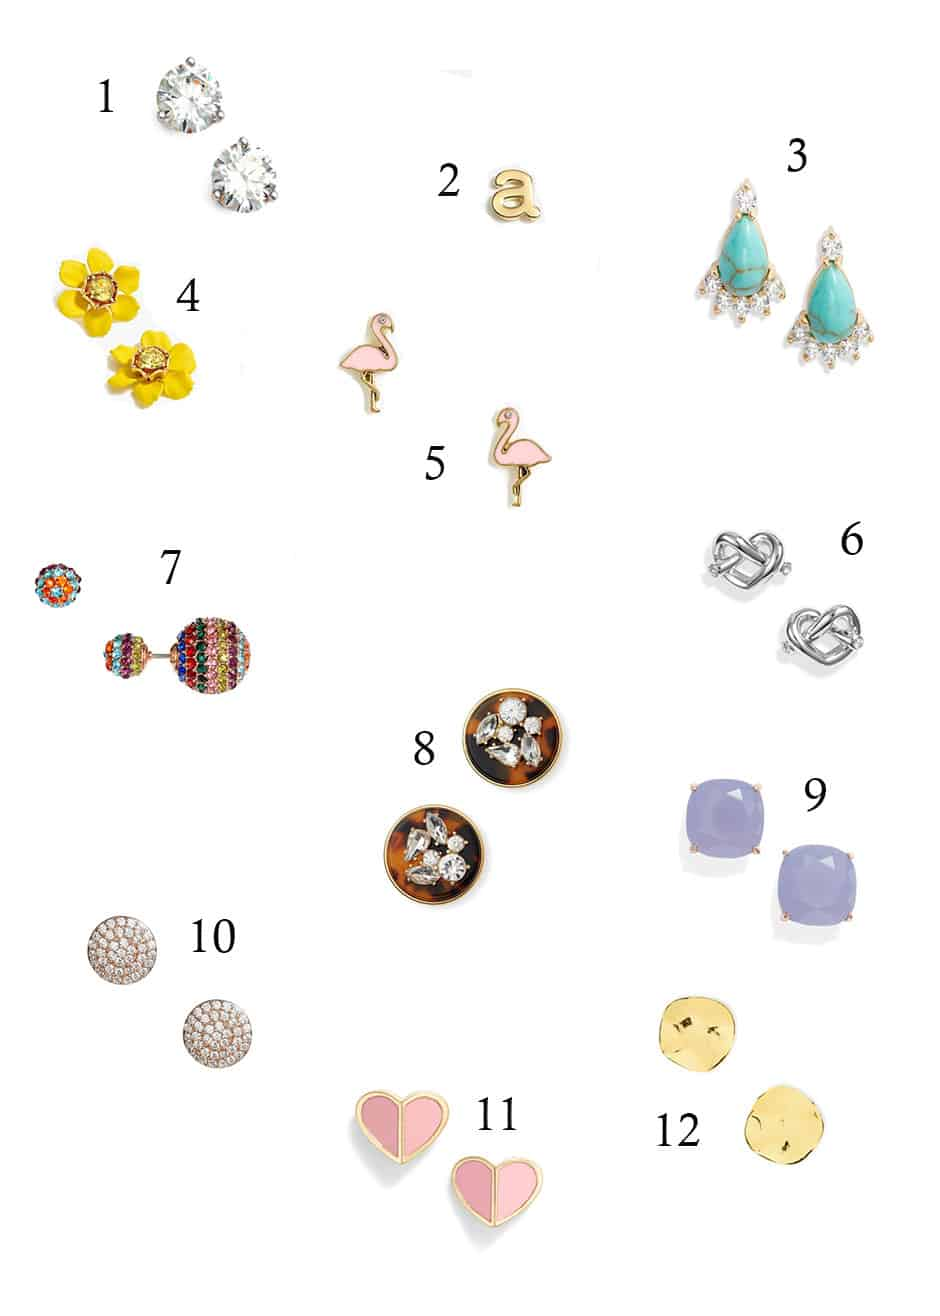 Looking for some cute studs to throw in no matter what you're wearing? This roundup has every style imaginable and they're all perfect for everyday wear! Throw in a pair of faux diamond stud earrings or simply some gold bars and look like you actually took time getting ready.